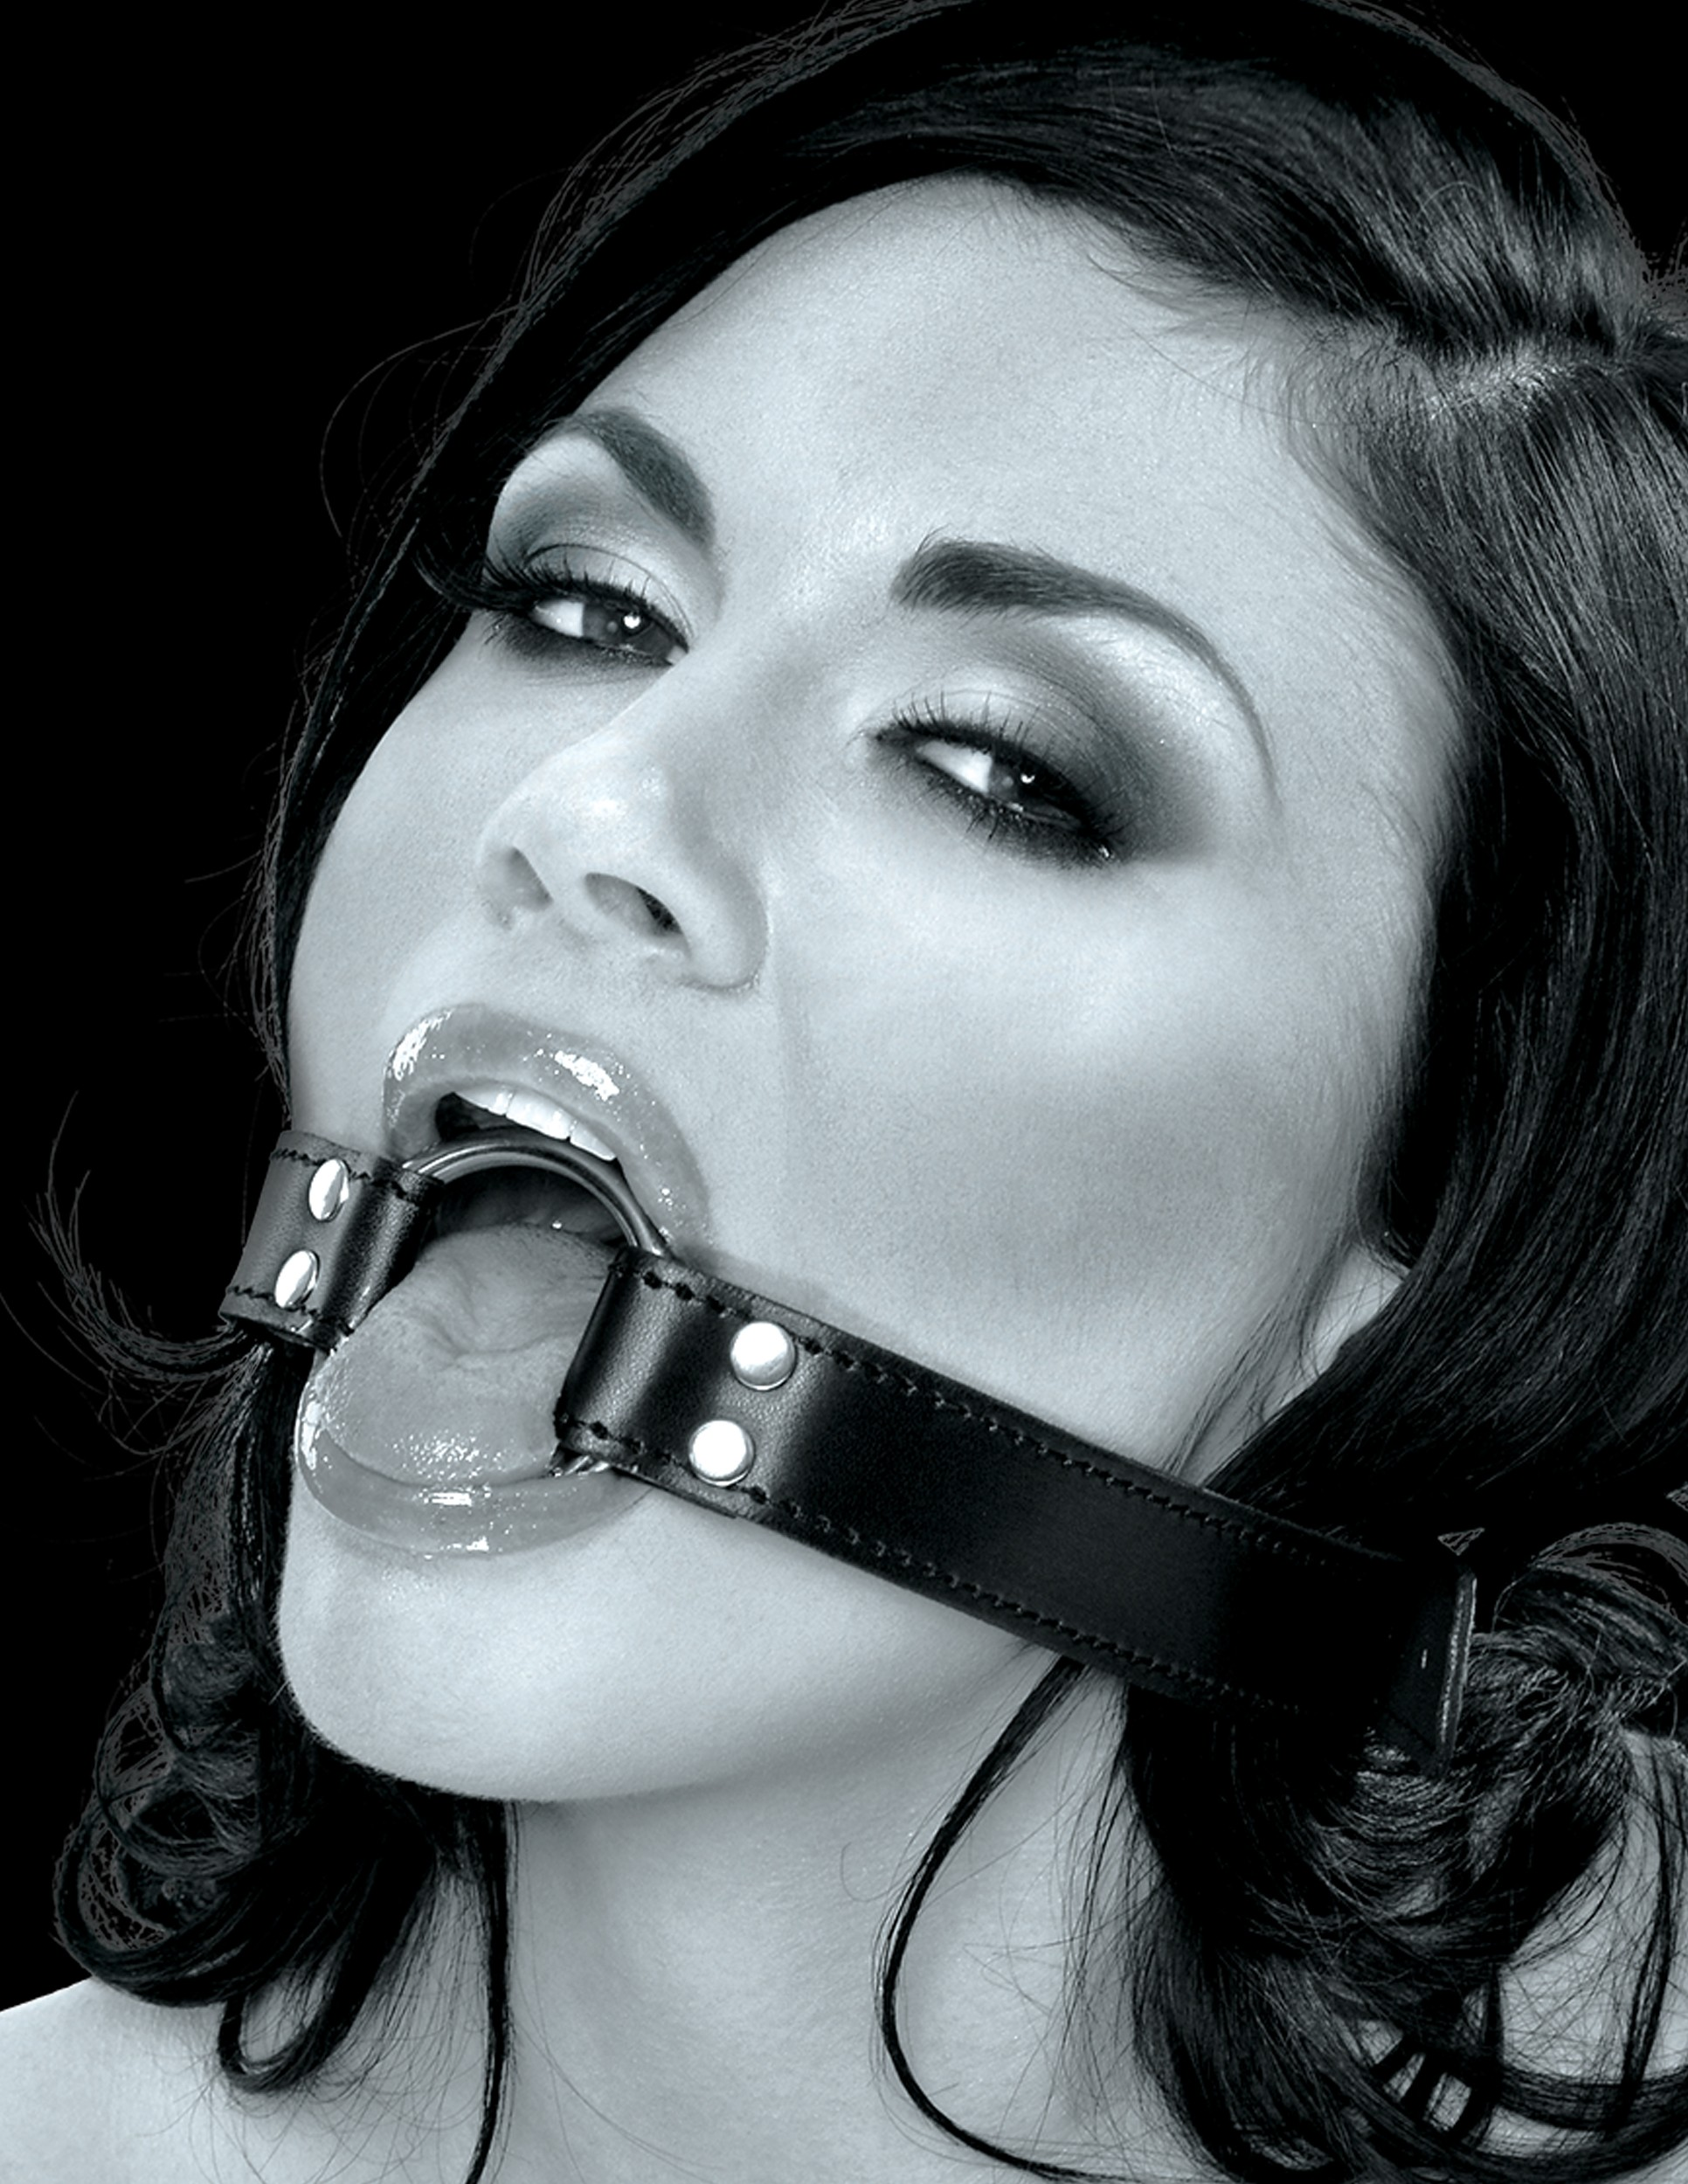 steel o-ring gag by fetish fantasy series